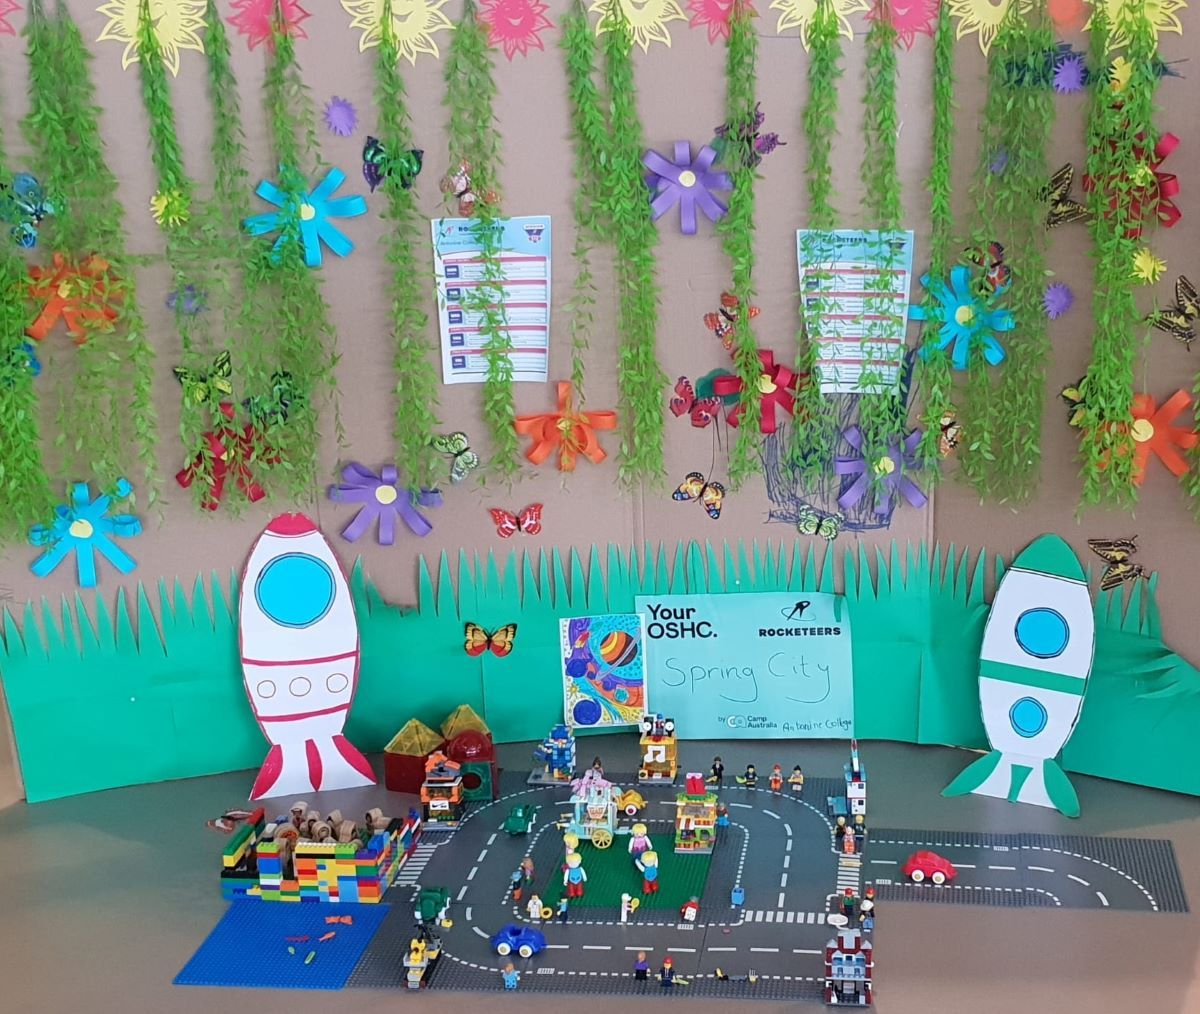 Rocketeers – Bringing School Holiday Experiences to Children